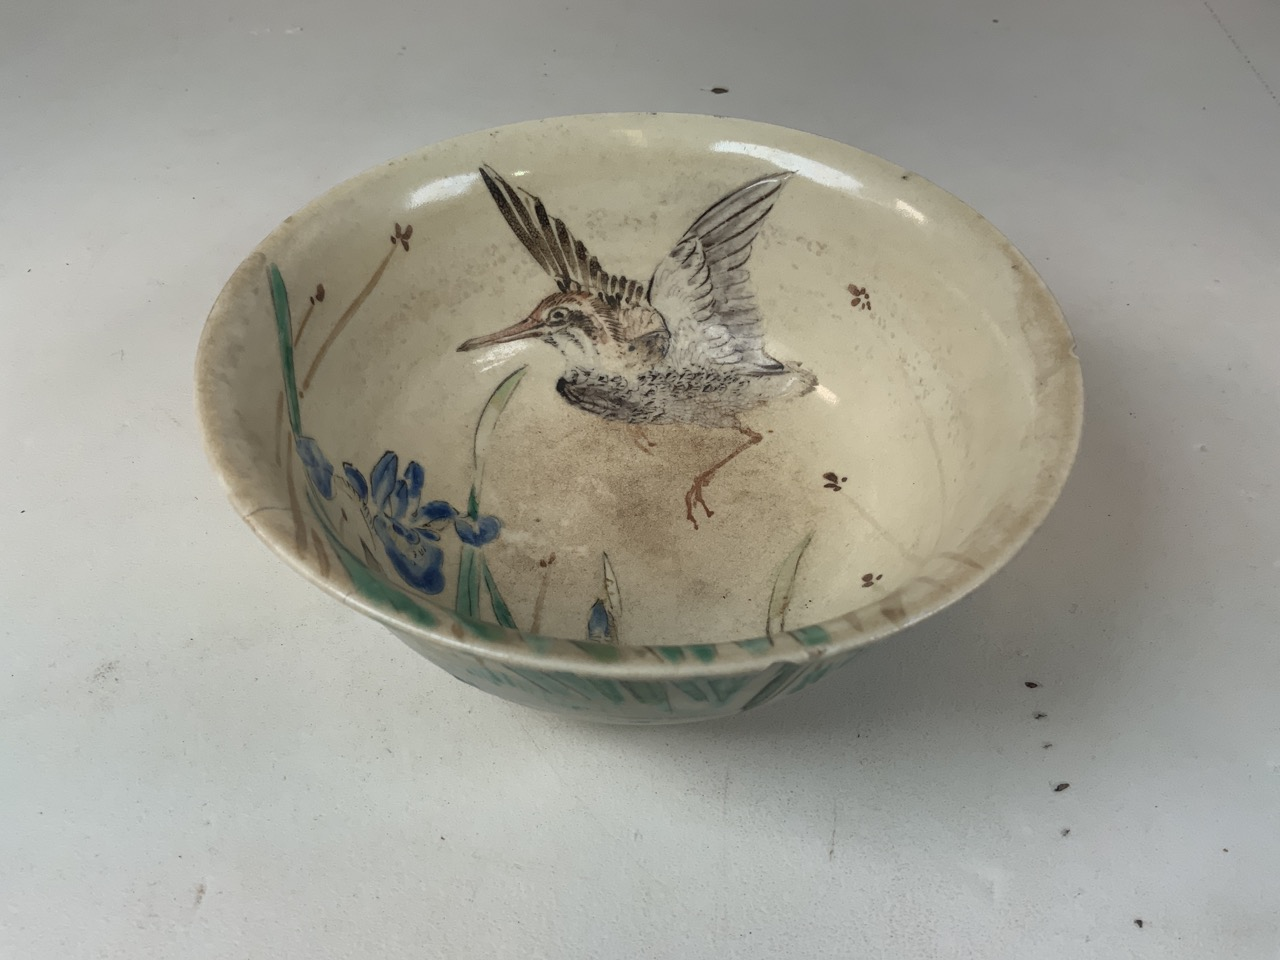 An oriental hand painted bowl with bird image to interior. Oriental markings to base. Chip to rim